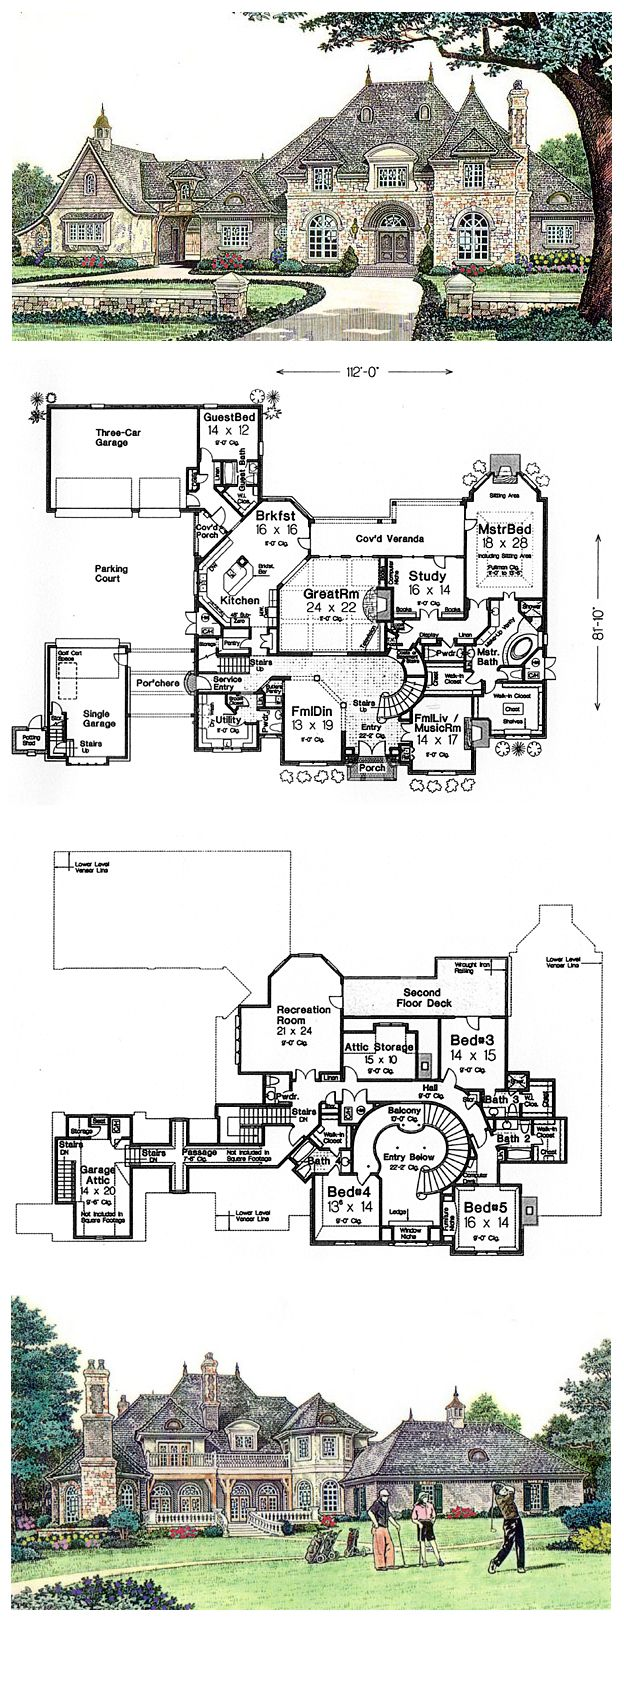 cool-house-plan-id-chp-39871-total-living-area-6274-sq-ft-5-bedrooms-6-bathrooms.-multiple-stairs.-very-spacious.